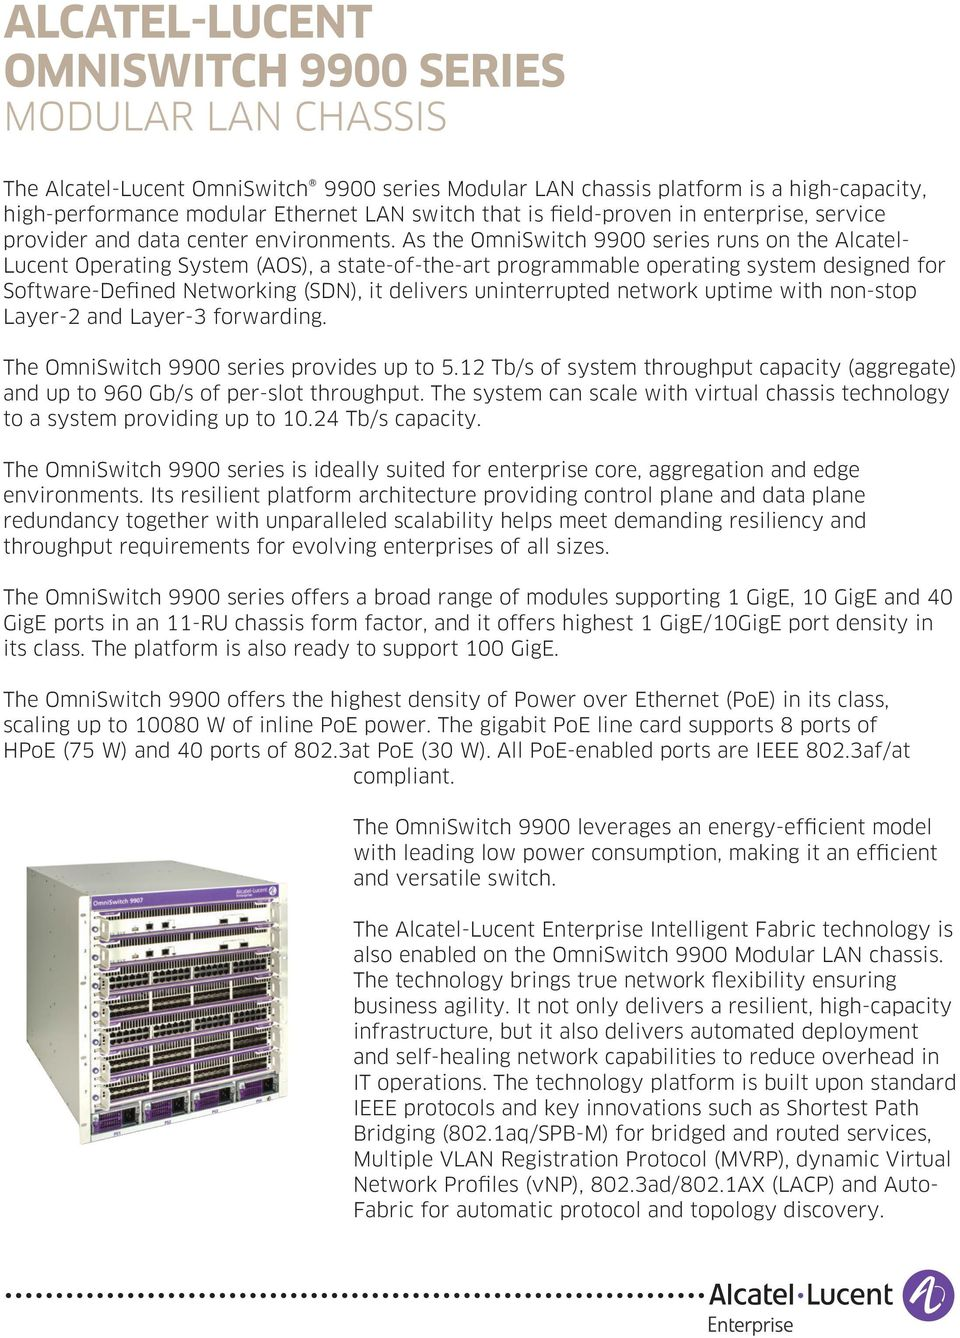 As the OmniSwitch 9900 series runs on the Alcatel- Lucent Operating System (AOS), a state-of-the-art programmable operating system designed for Software-Defined Networking (SDN), it delivers